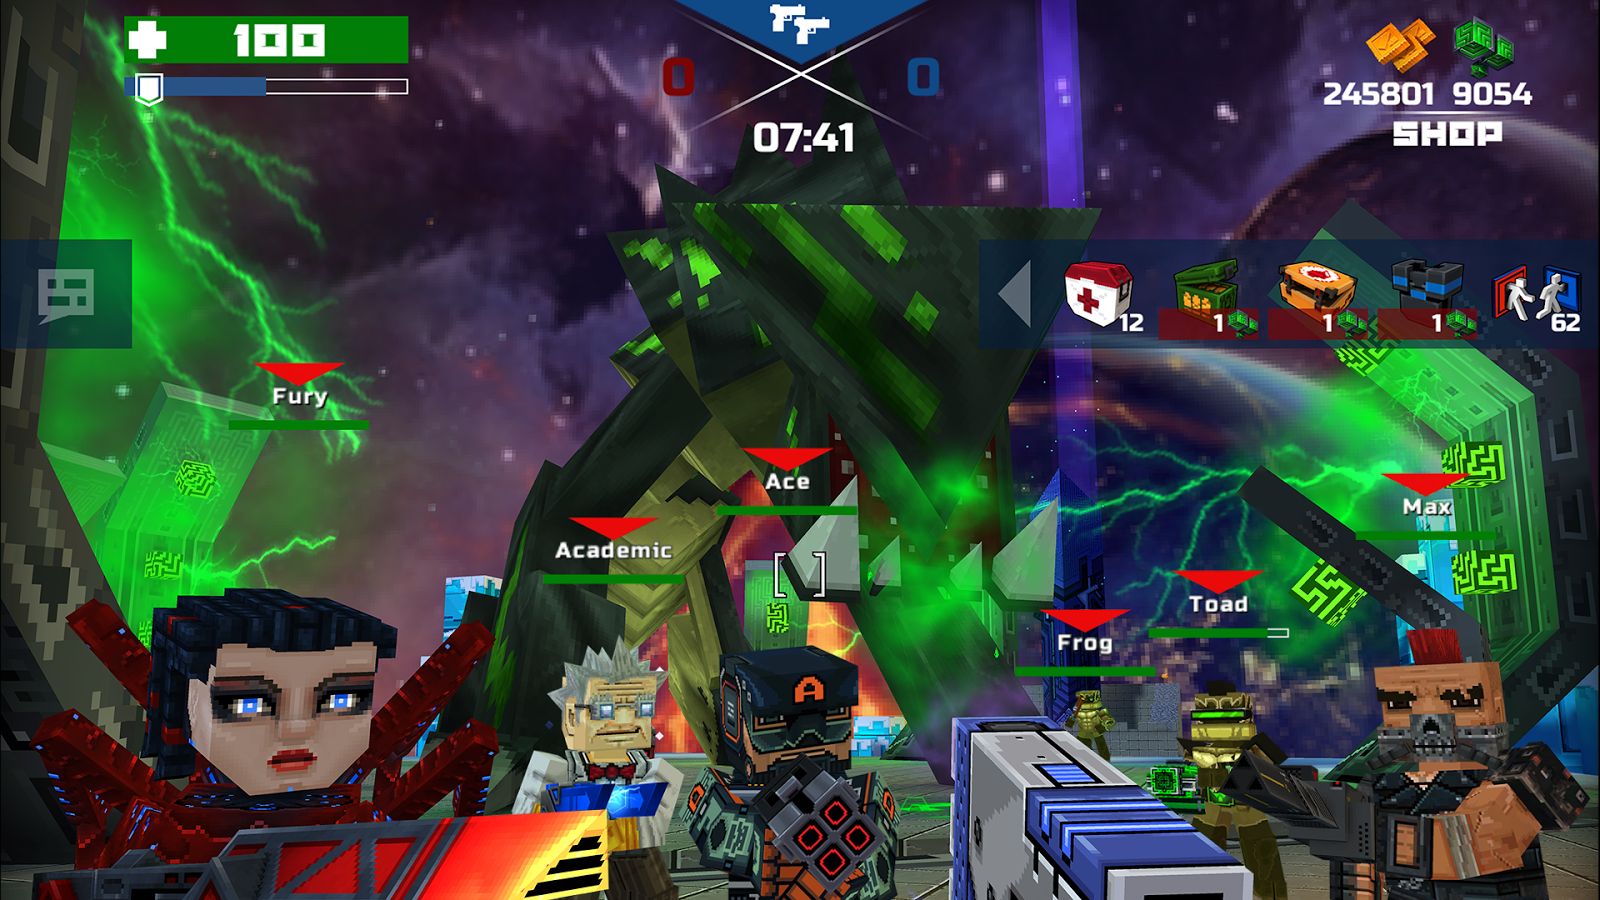 Pixelfield - Best FPS MOBA Strategy Game Screenshot 13